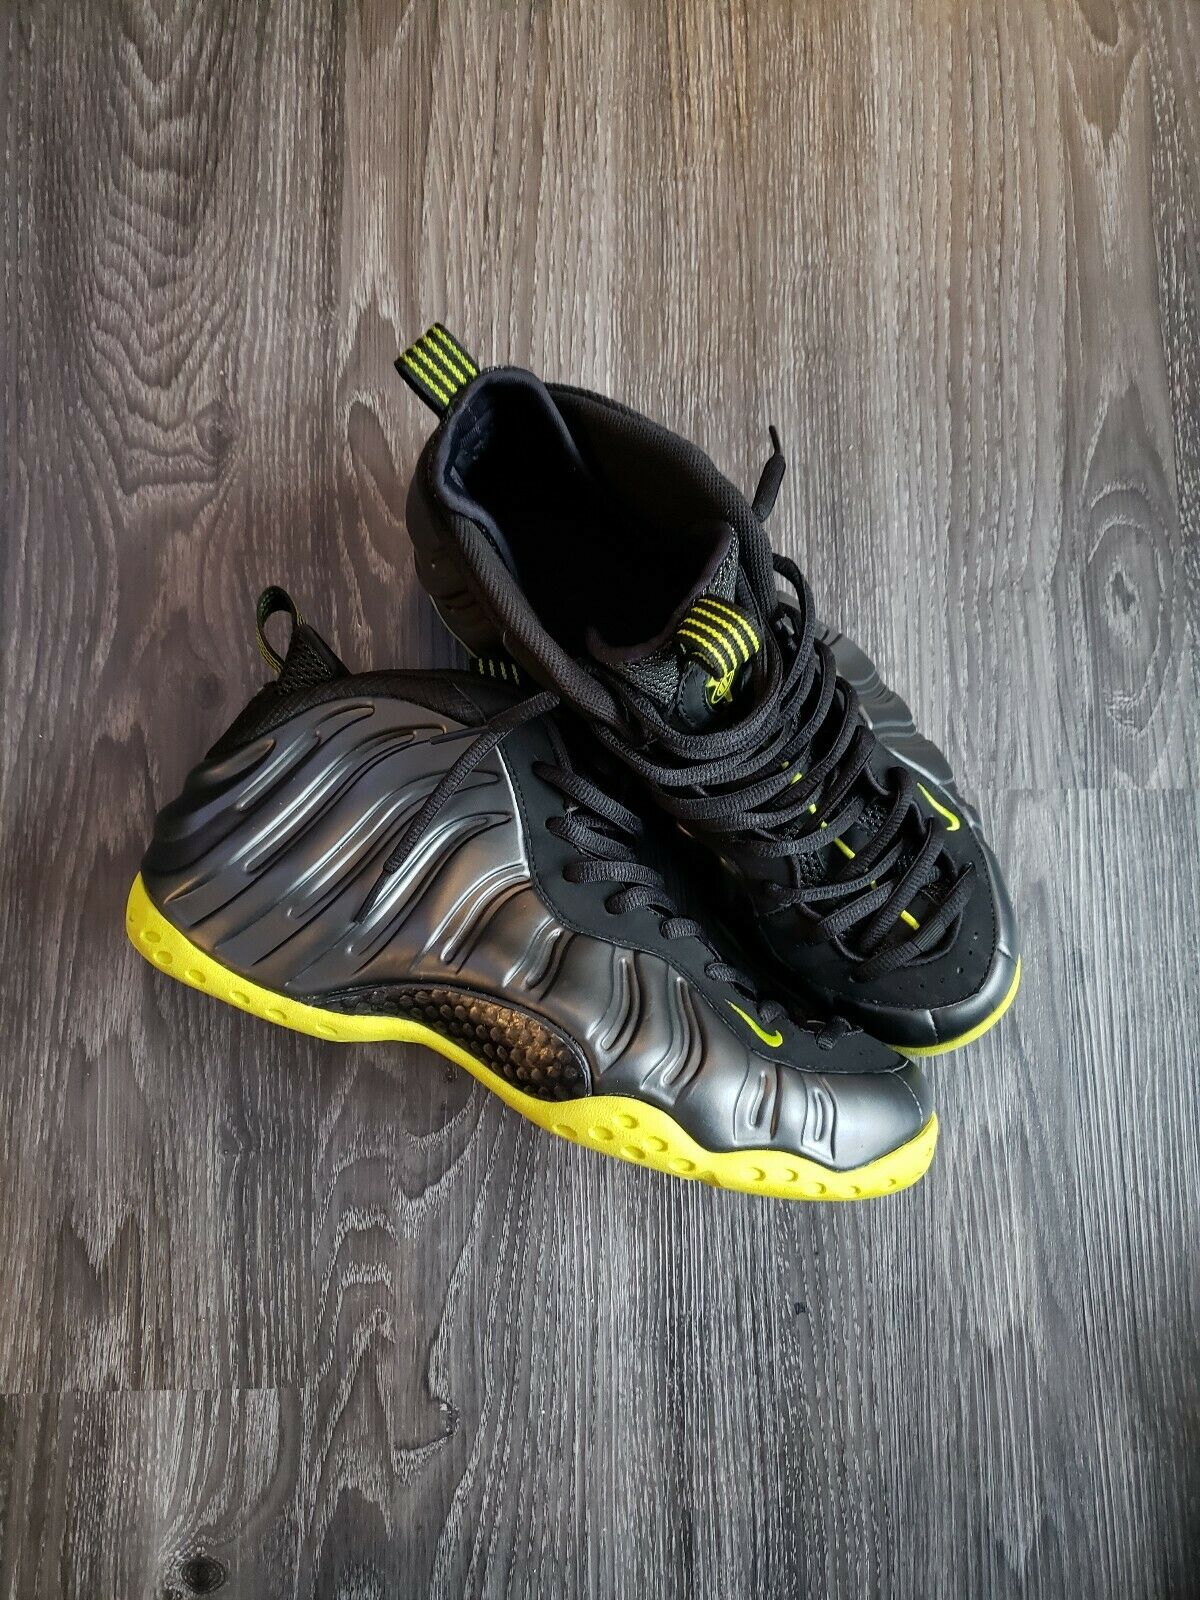 Nike Air Foamposite One Black Bright Cactus shoes Size 12  In very good conditi